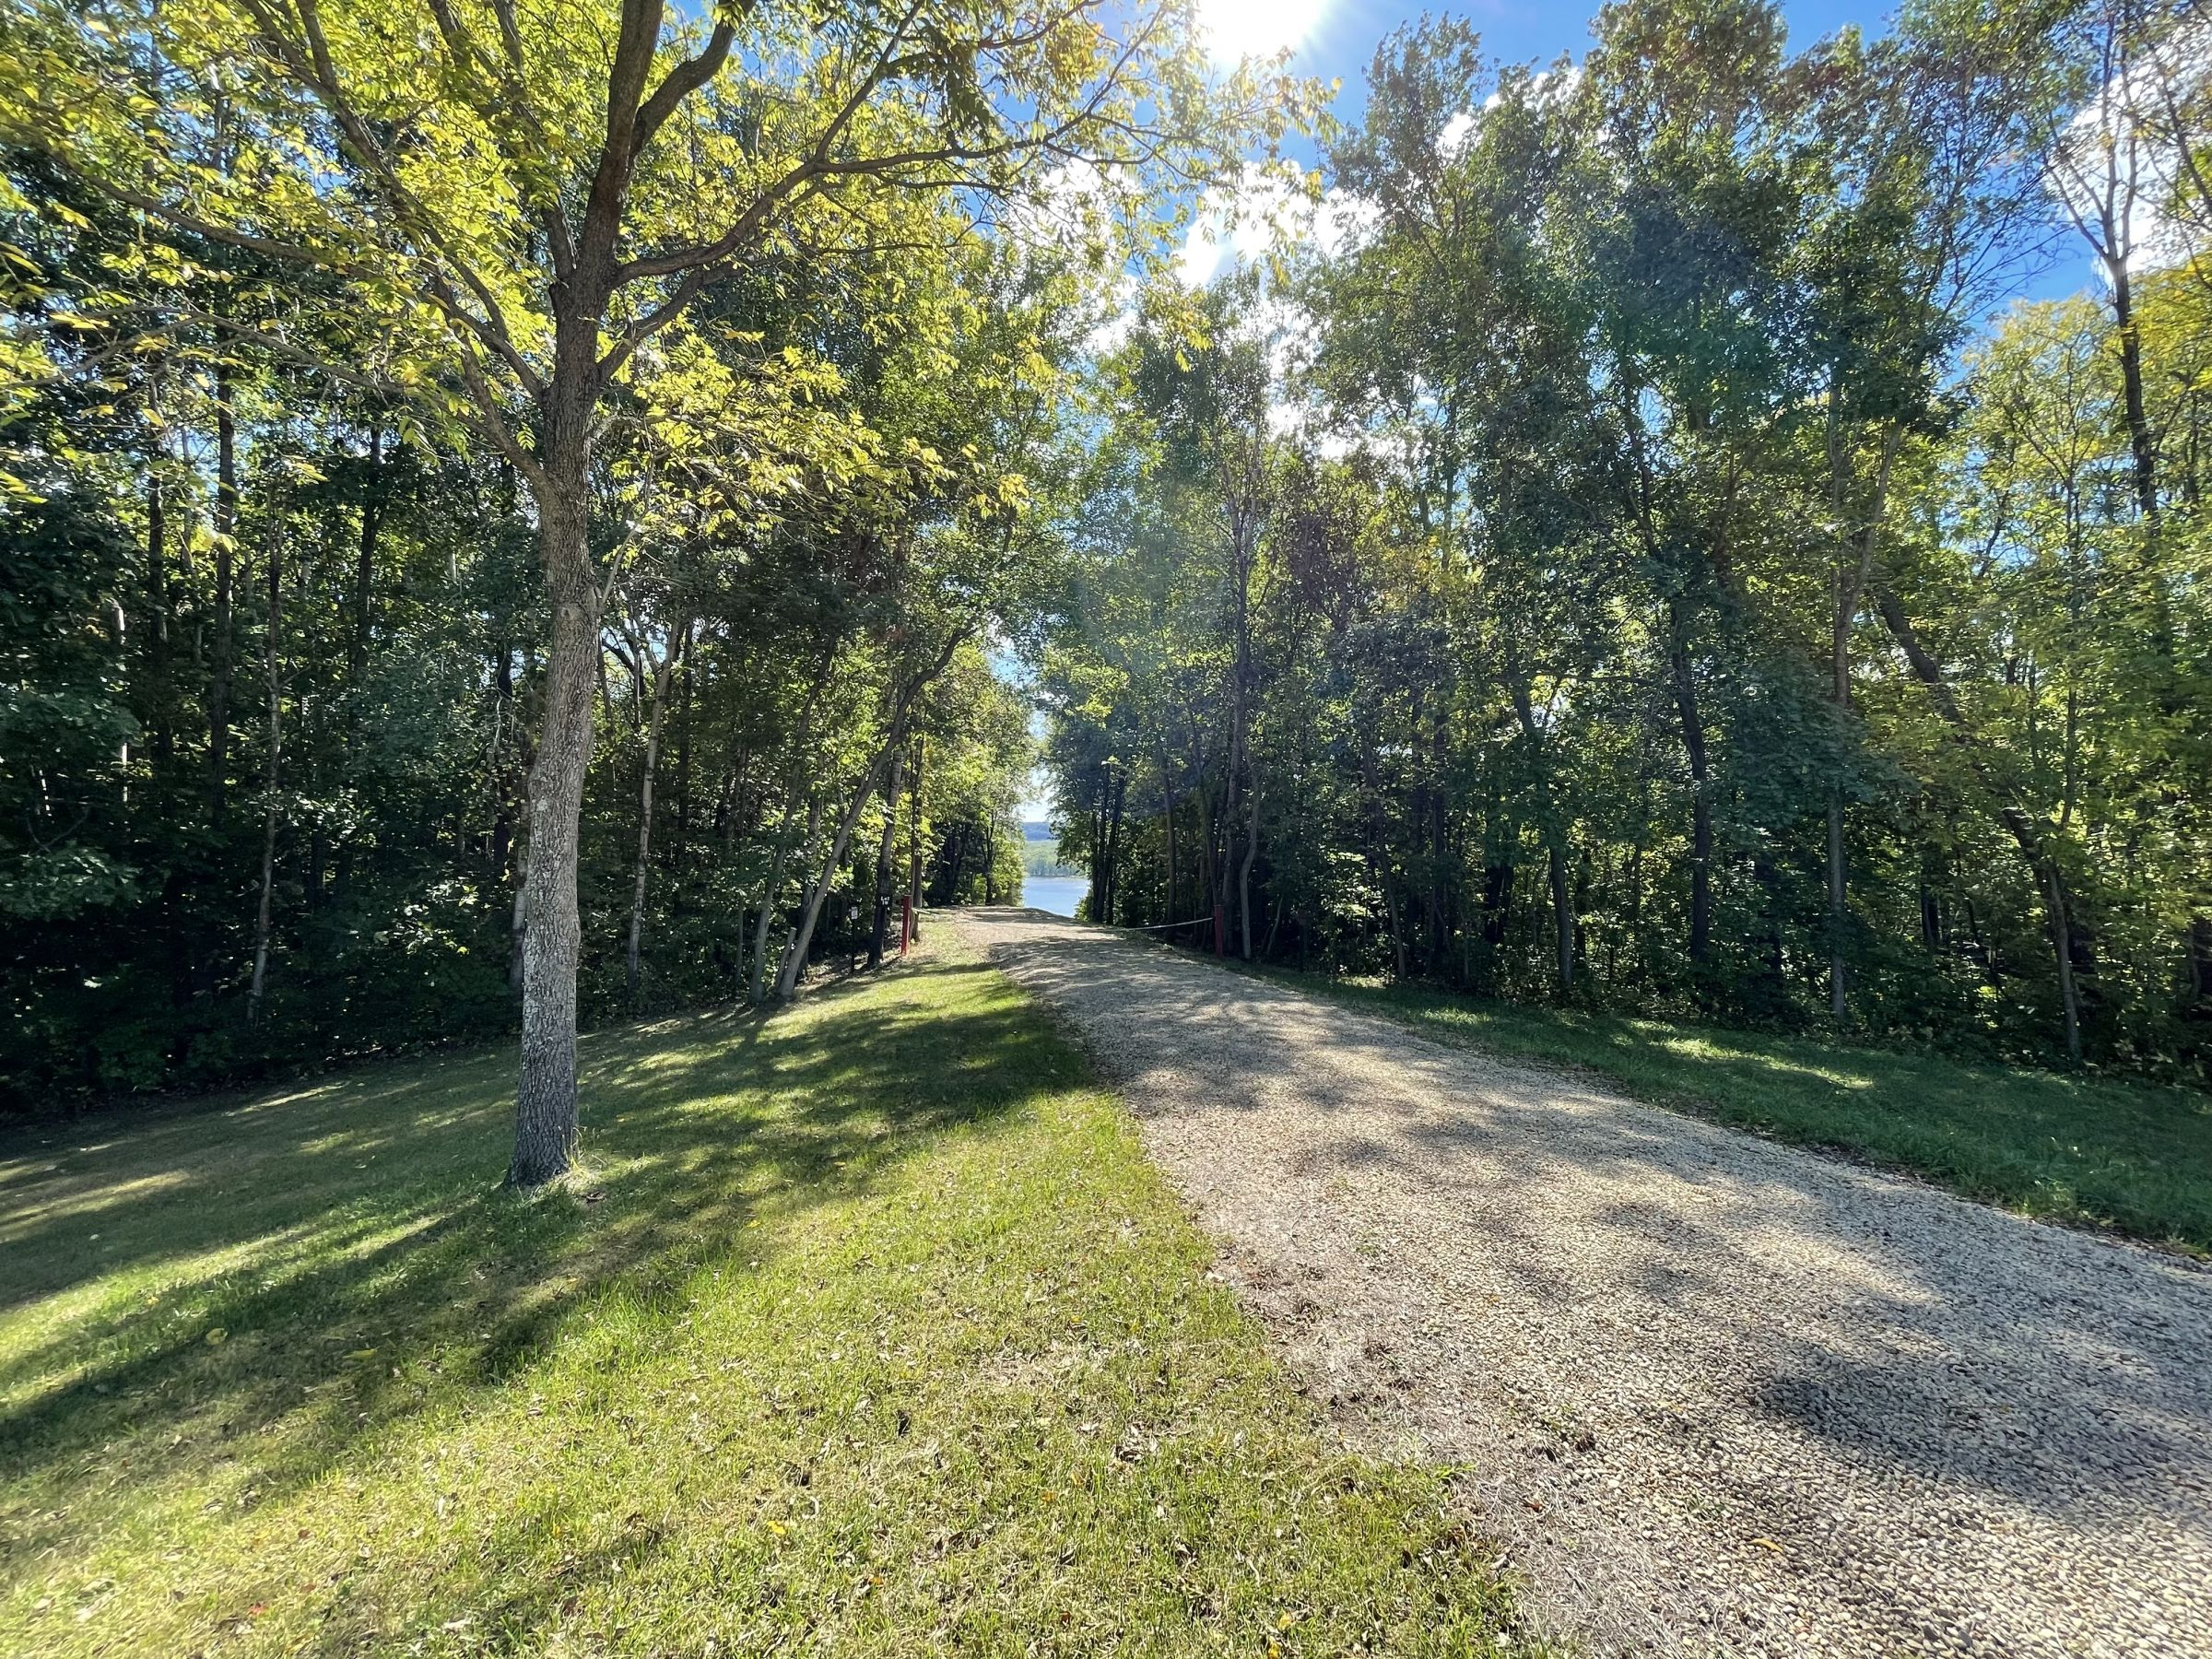 land-grant-county-wisconsin-4-acres-listing-number-15772-3-2021-09-23-020454.JPG